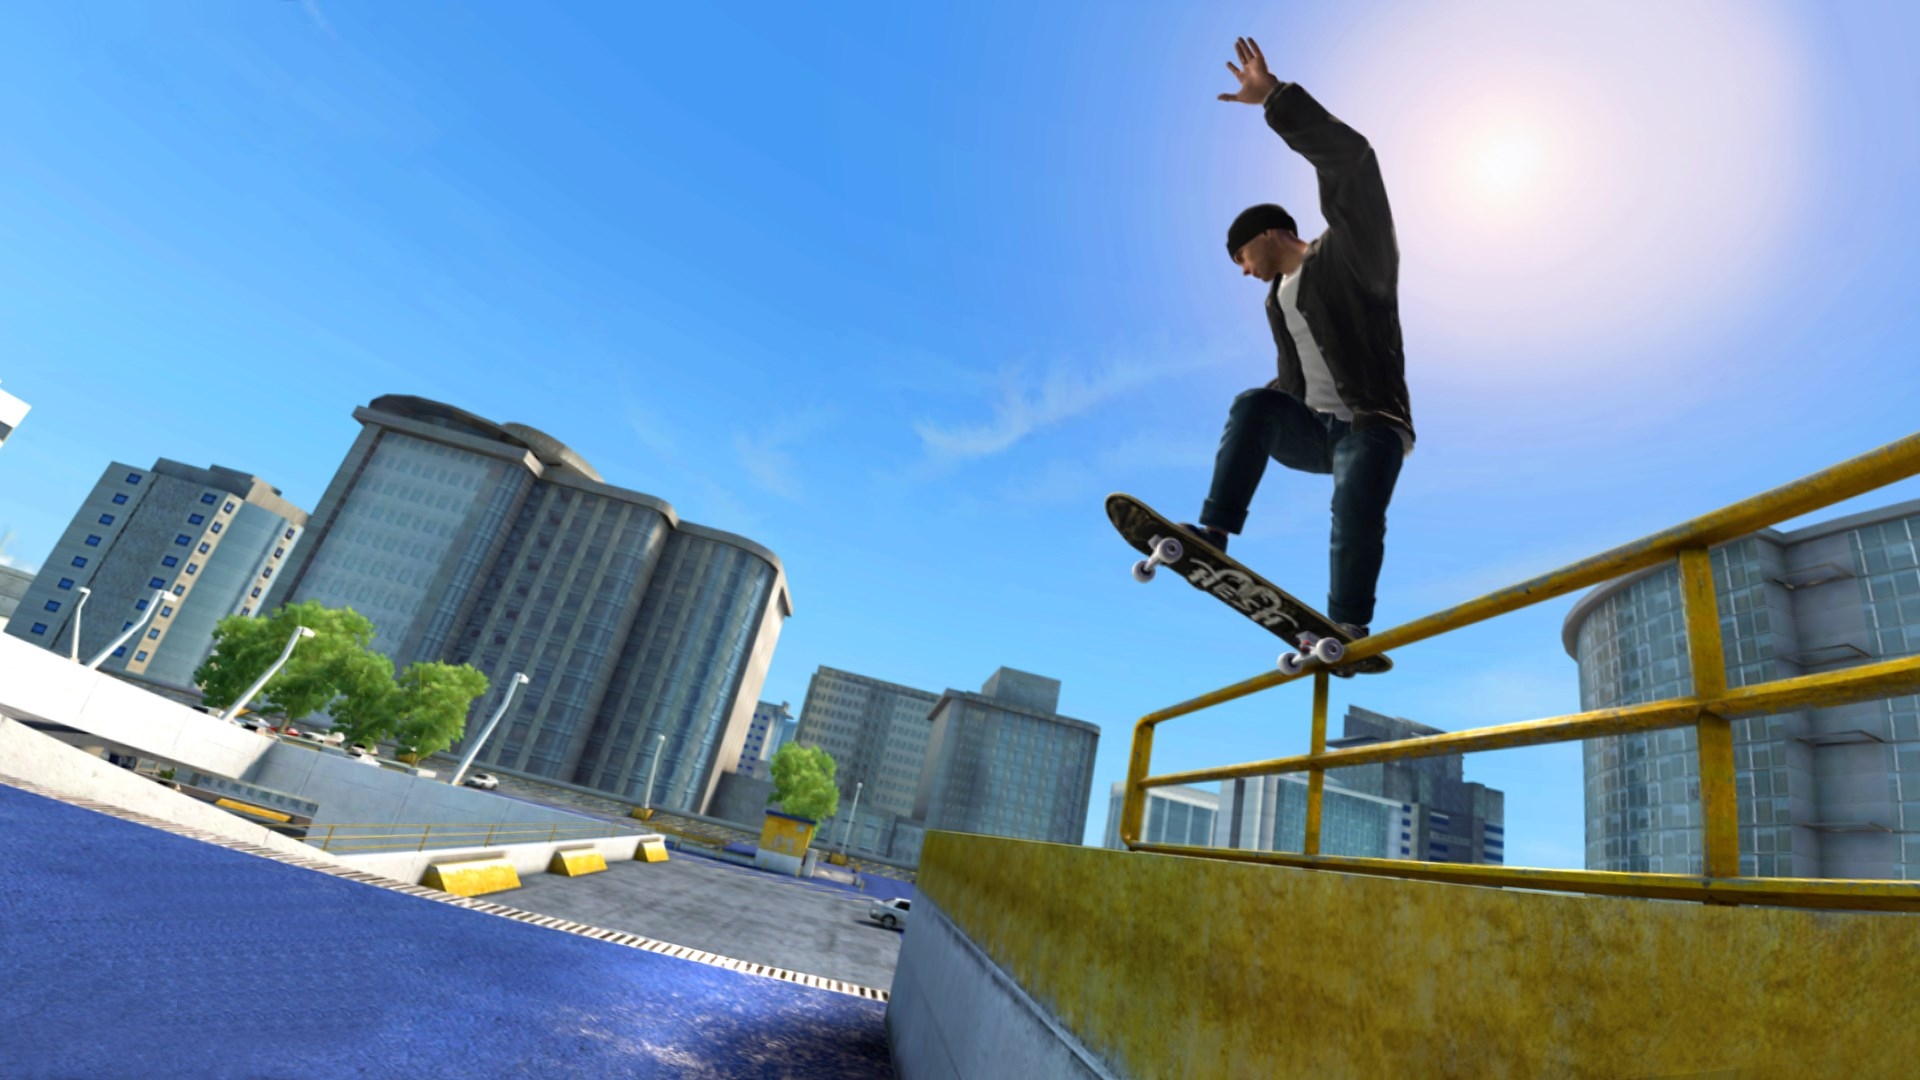 EA announced new Skate game is coming